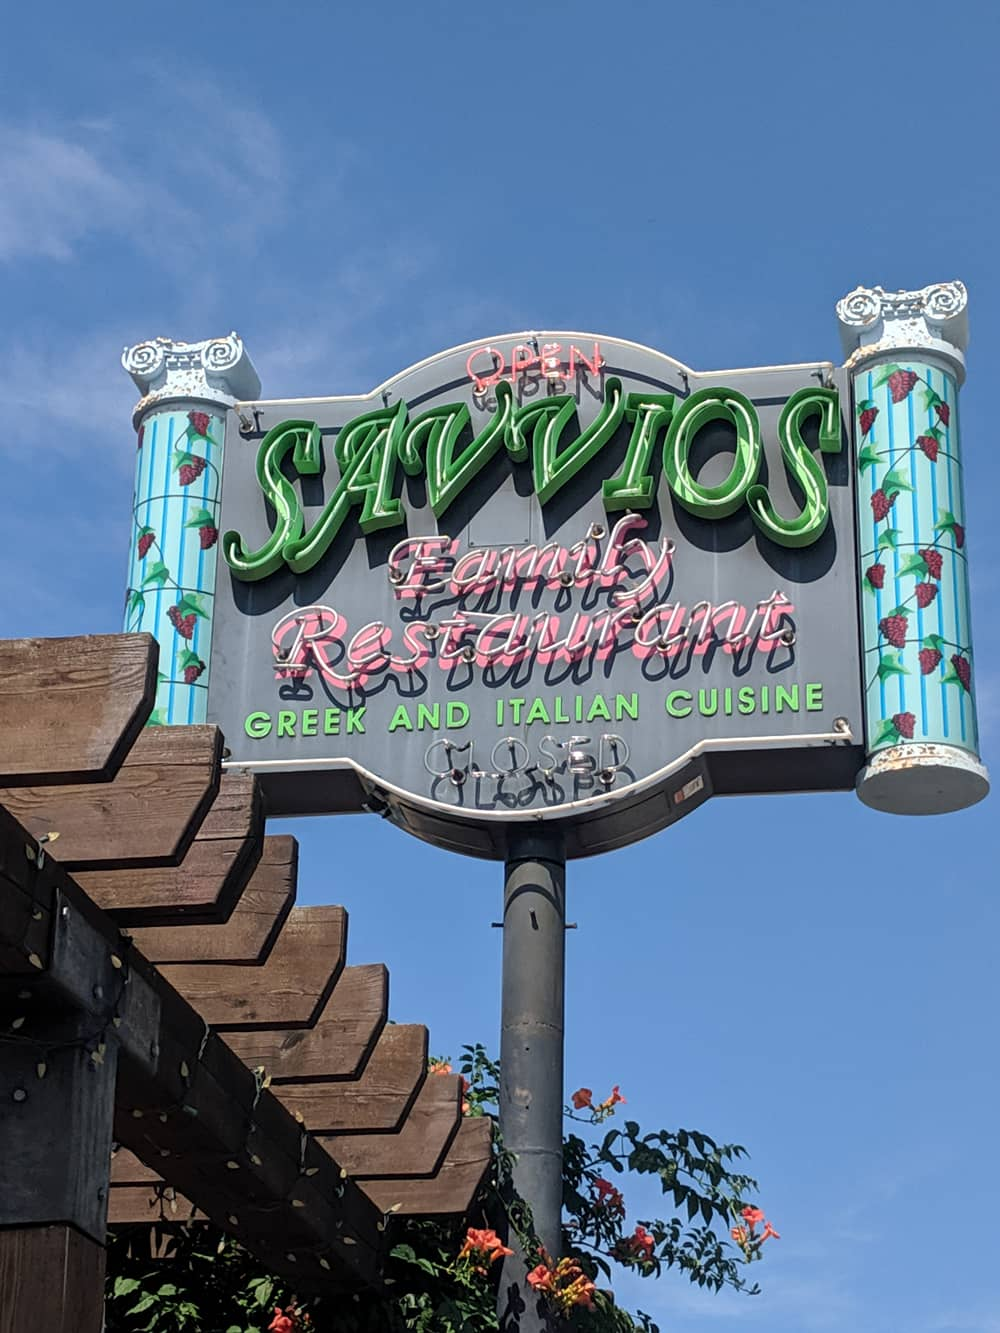 Savvios Family Restaurant is located in the heart of the Okanagan Valley's wine country.